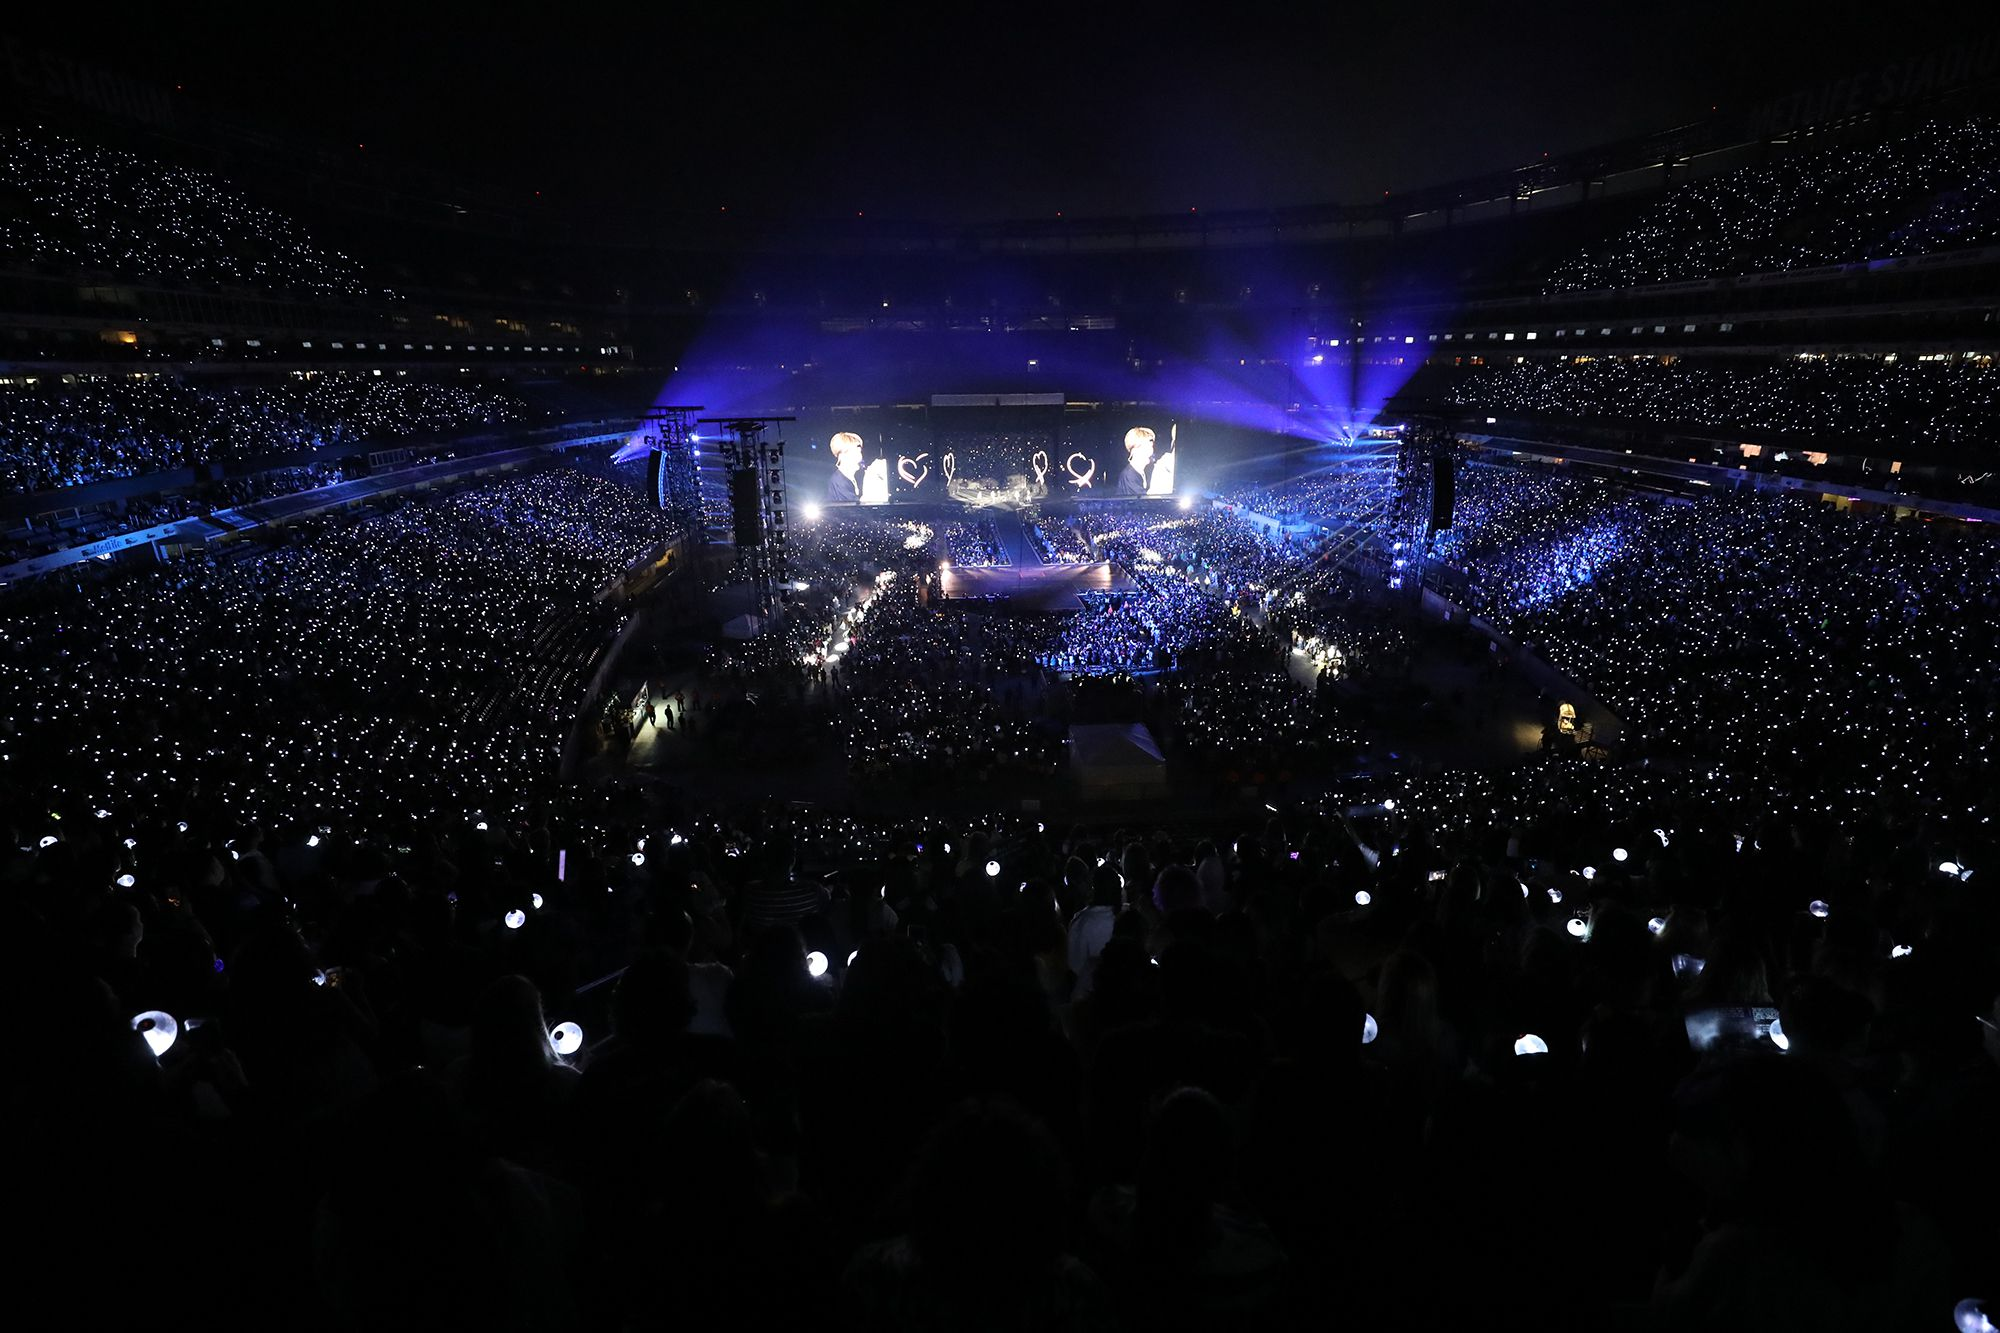 Bts S Historic Metlife Stadium Concert Was Electrifying Fun Deafening Madness Review Nj Com